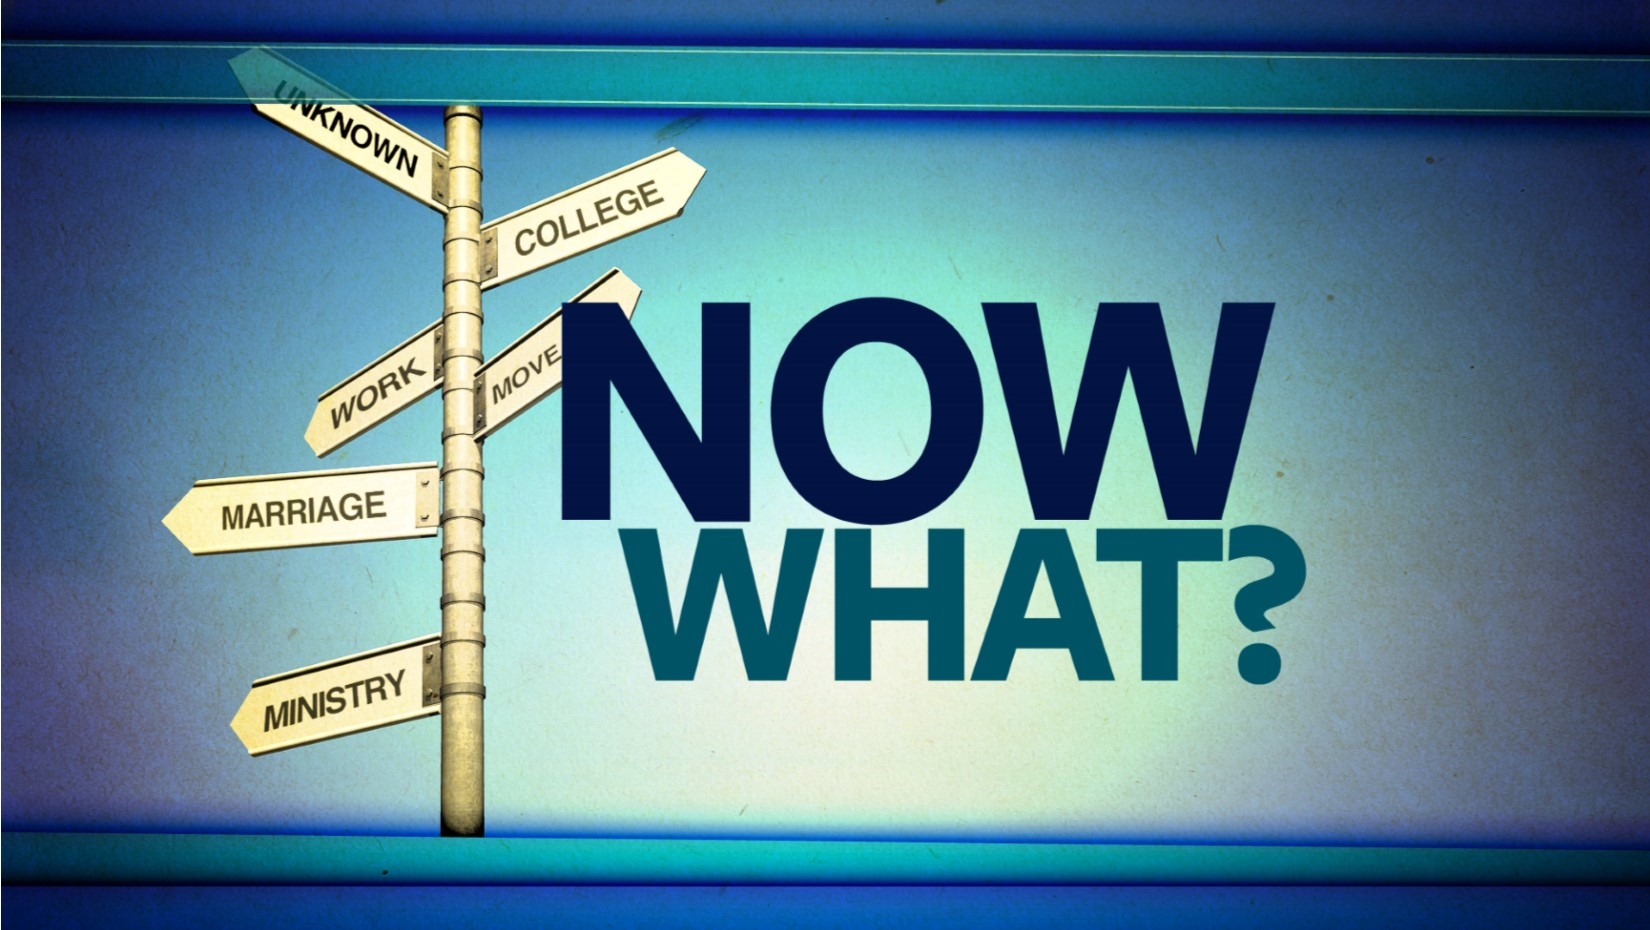 05.24.2020 Now What?